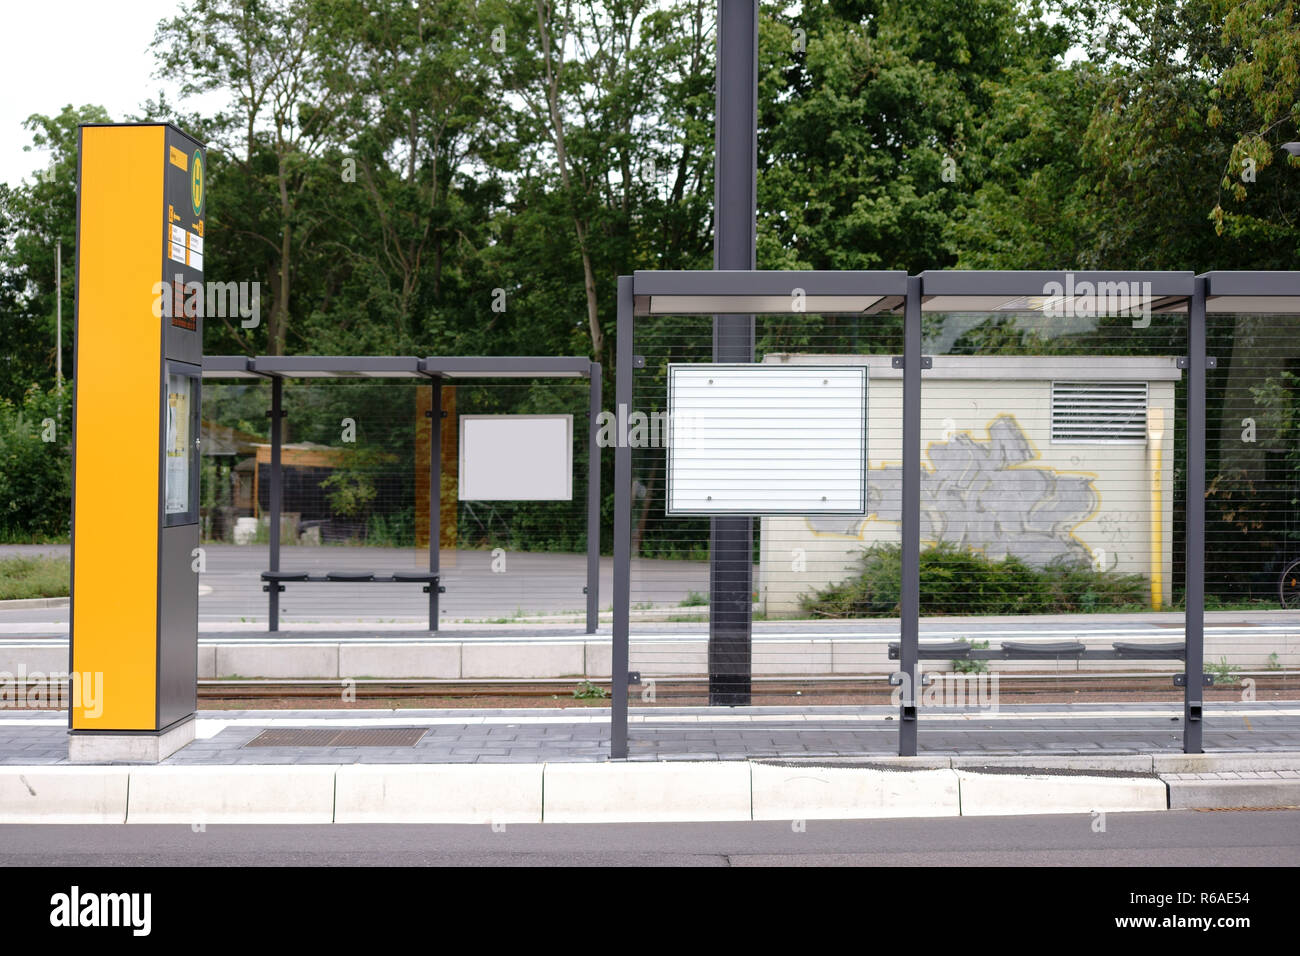 New Tram Stop - Stock Image